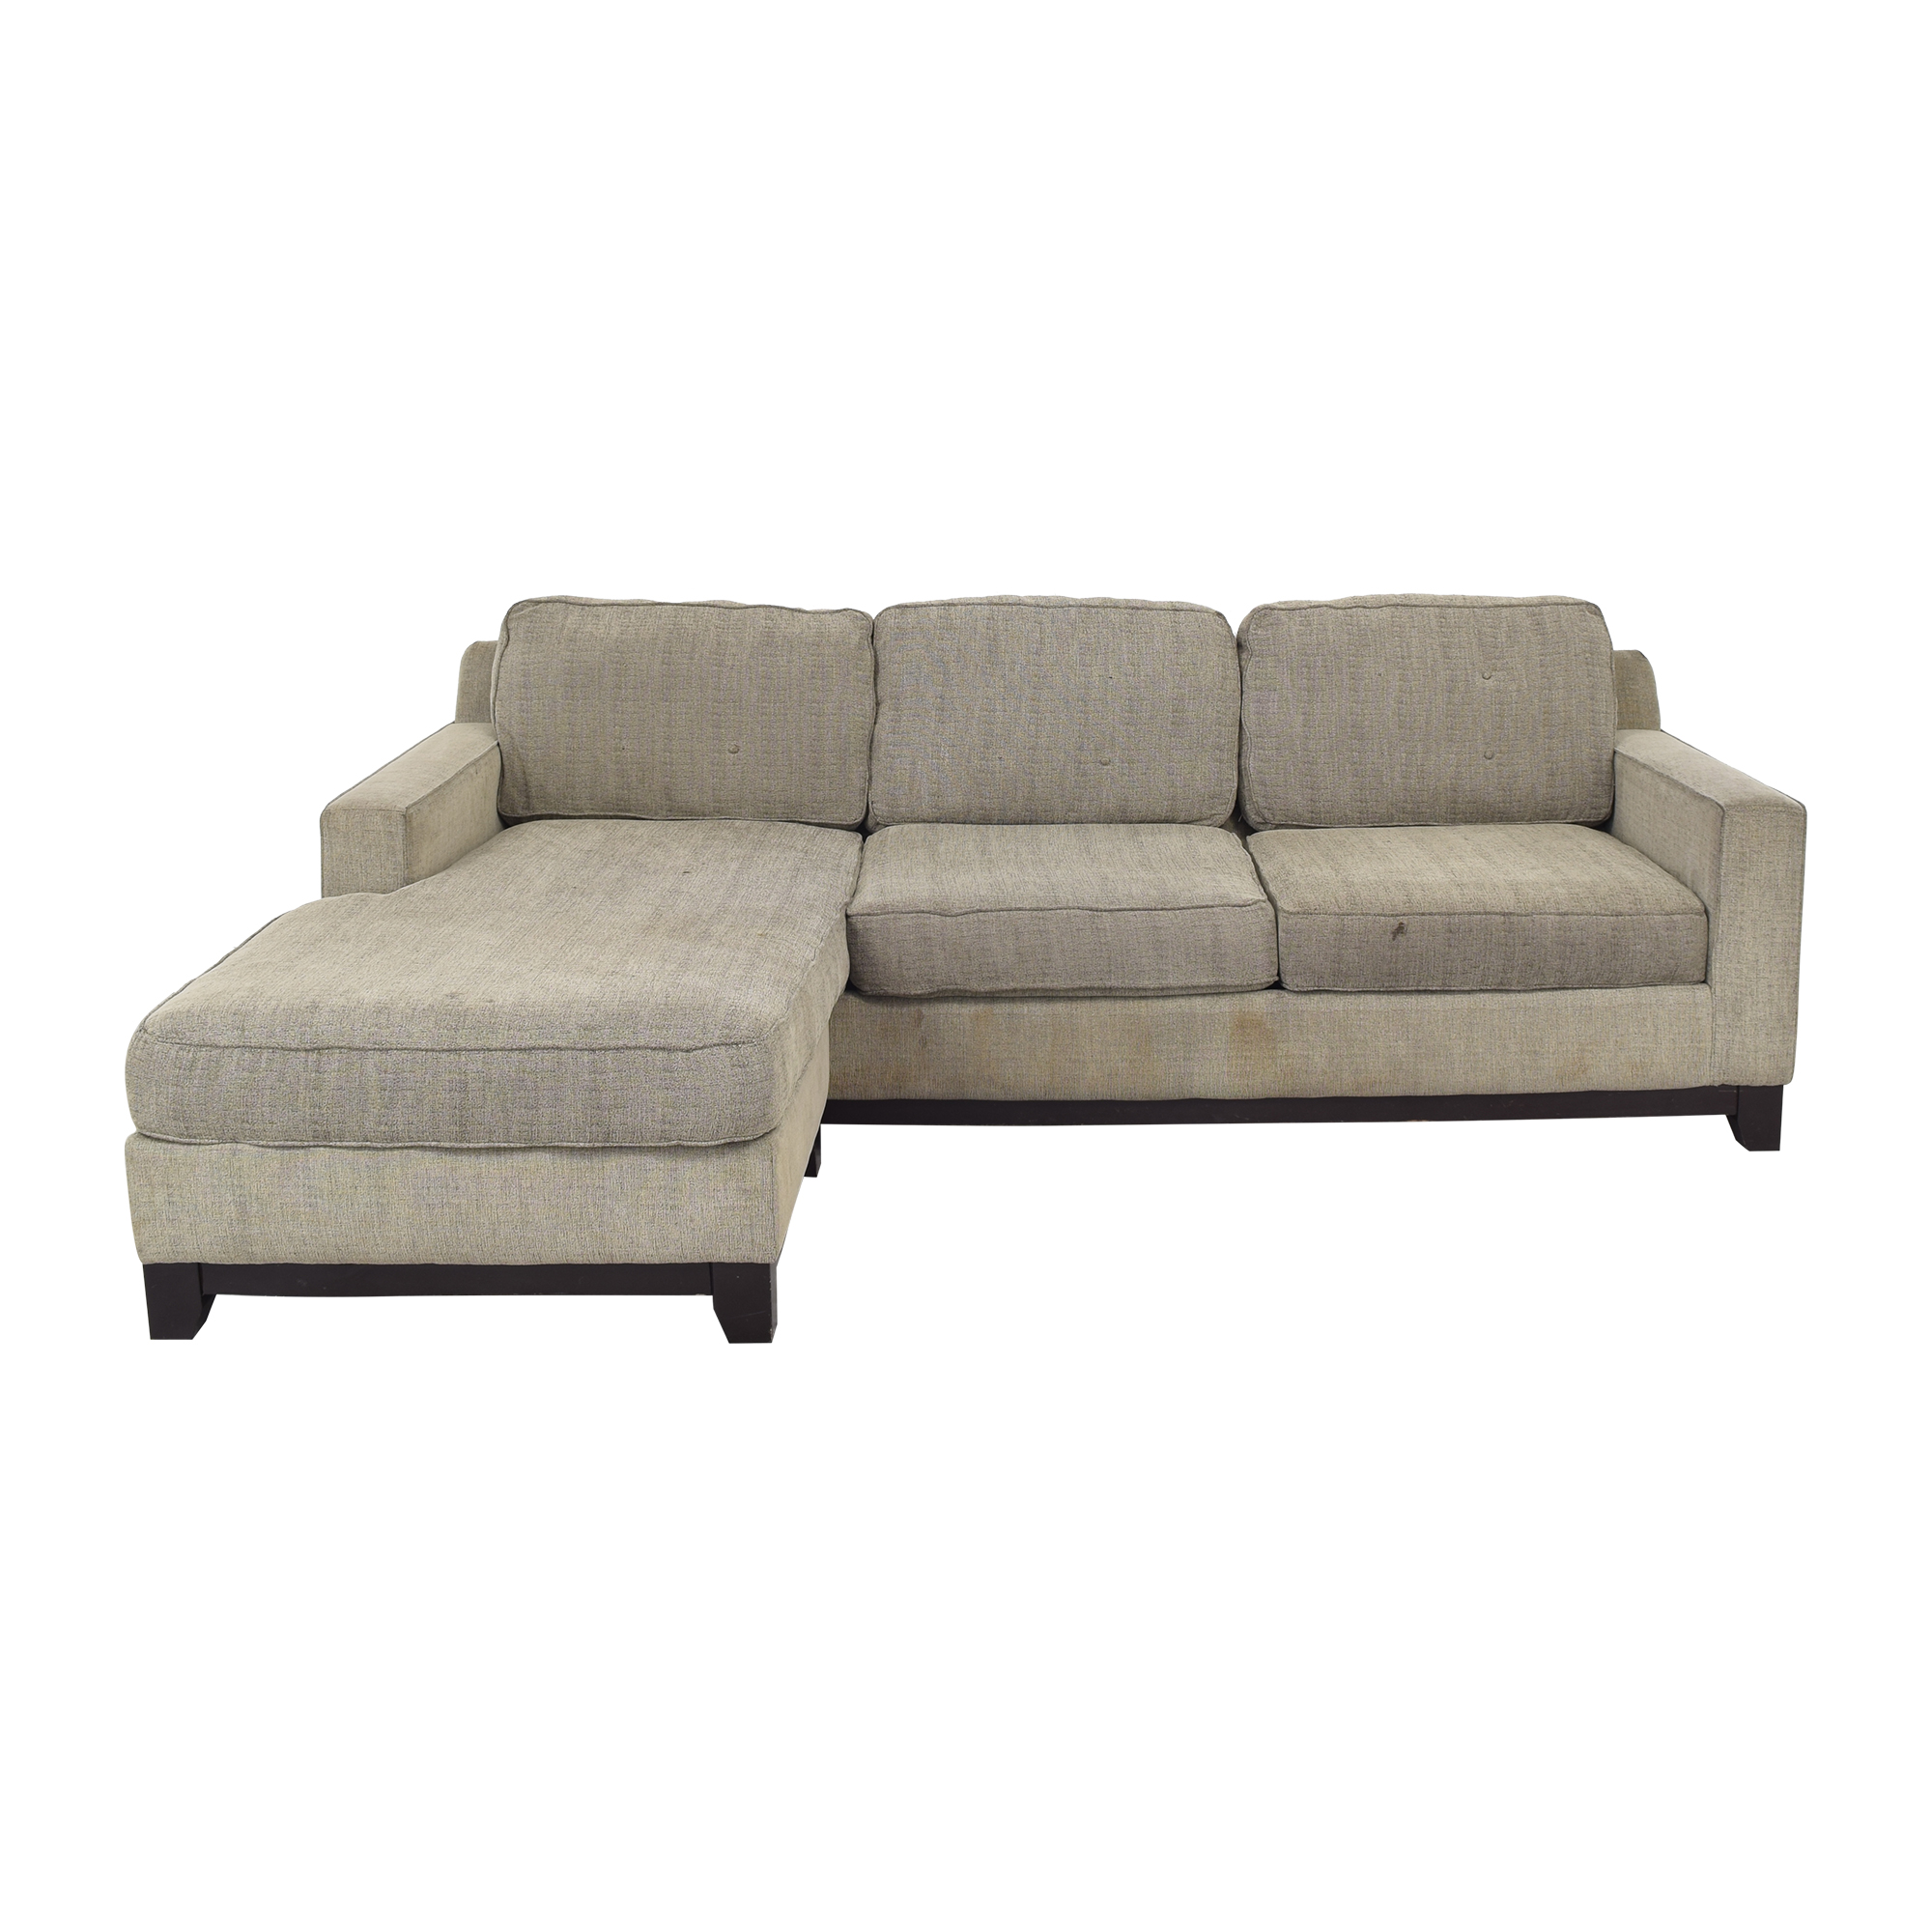 Macy's Jonathan Louis Chaise Sectional Sofa nj